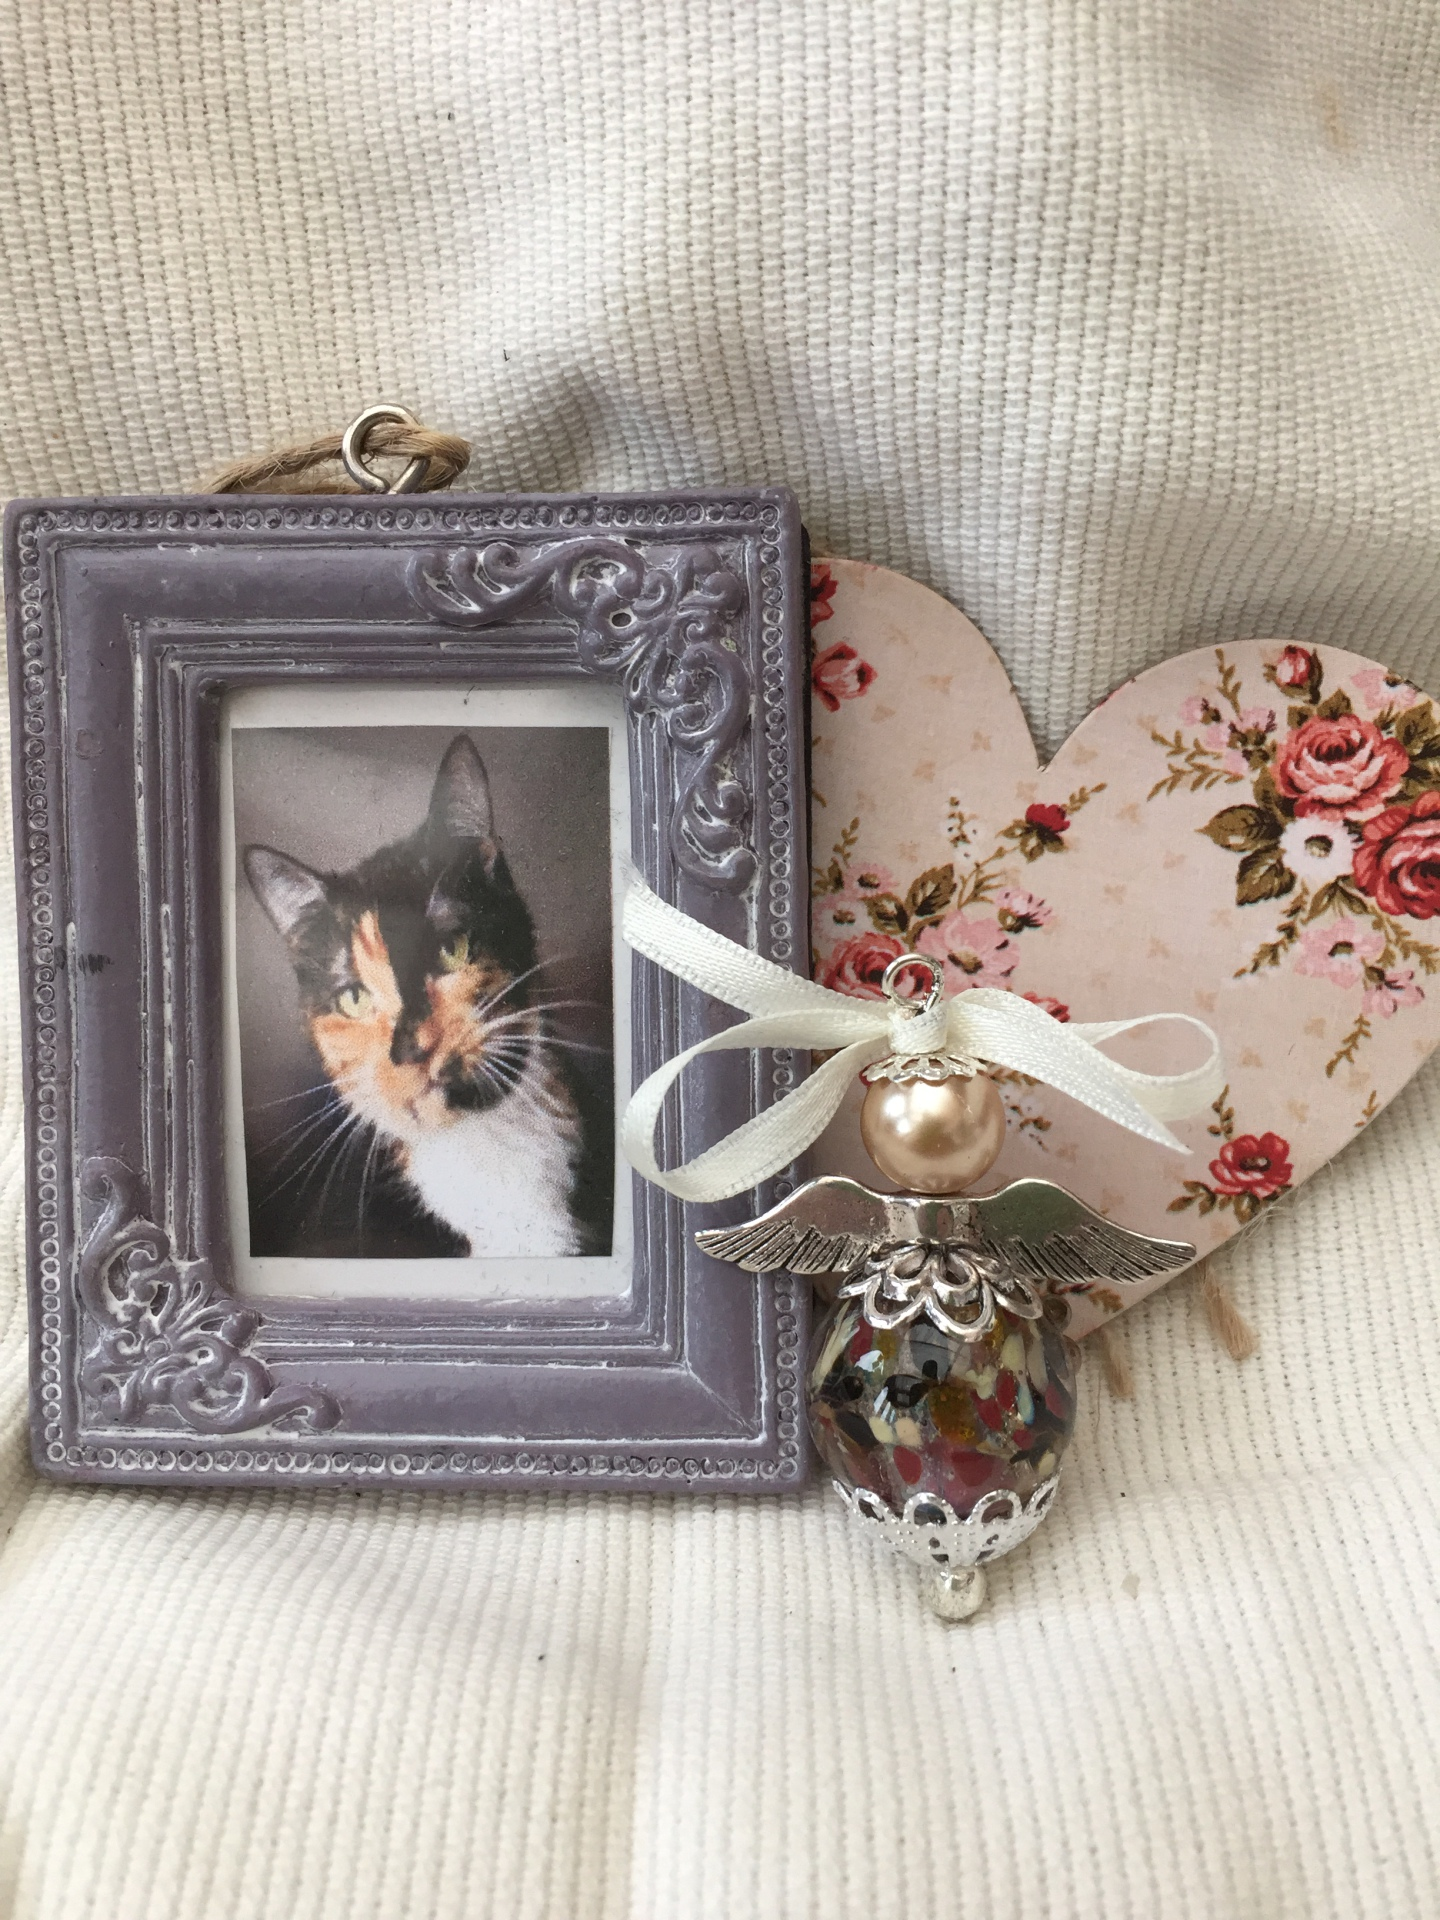 ashes in glass angel cremation funeral memorial loved pets